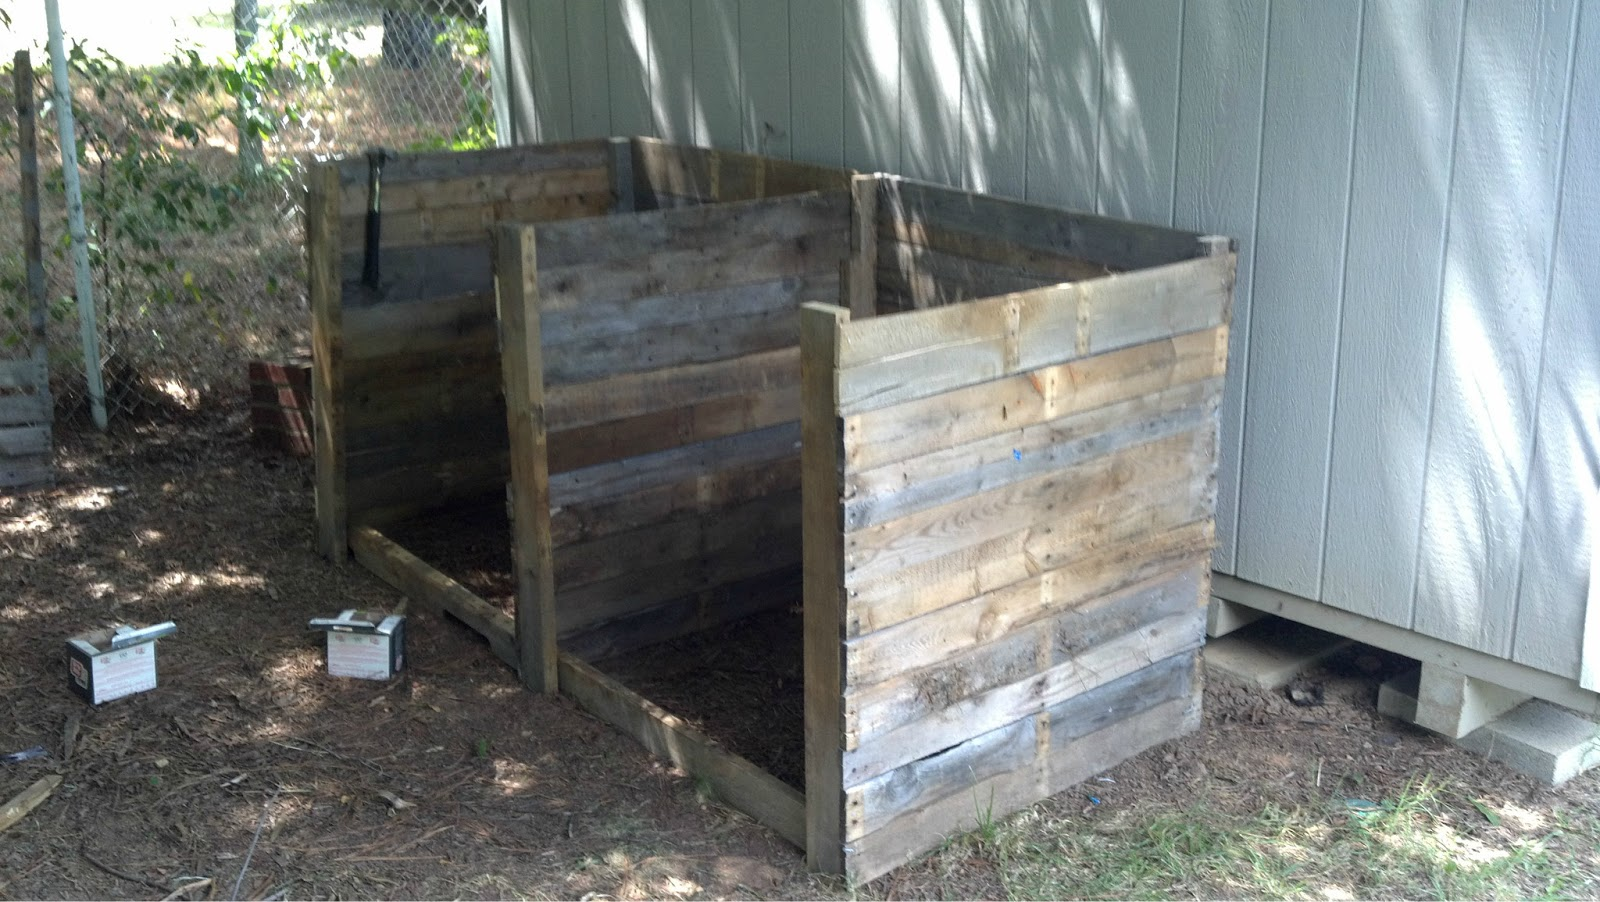 how to make compost bin not smell